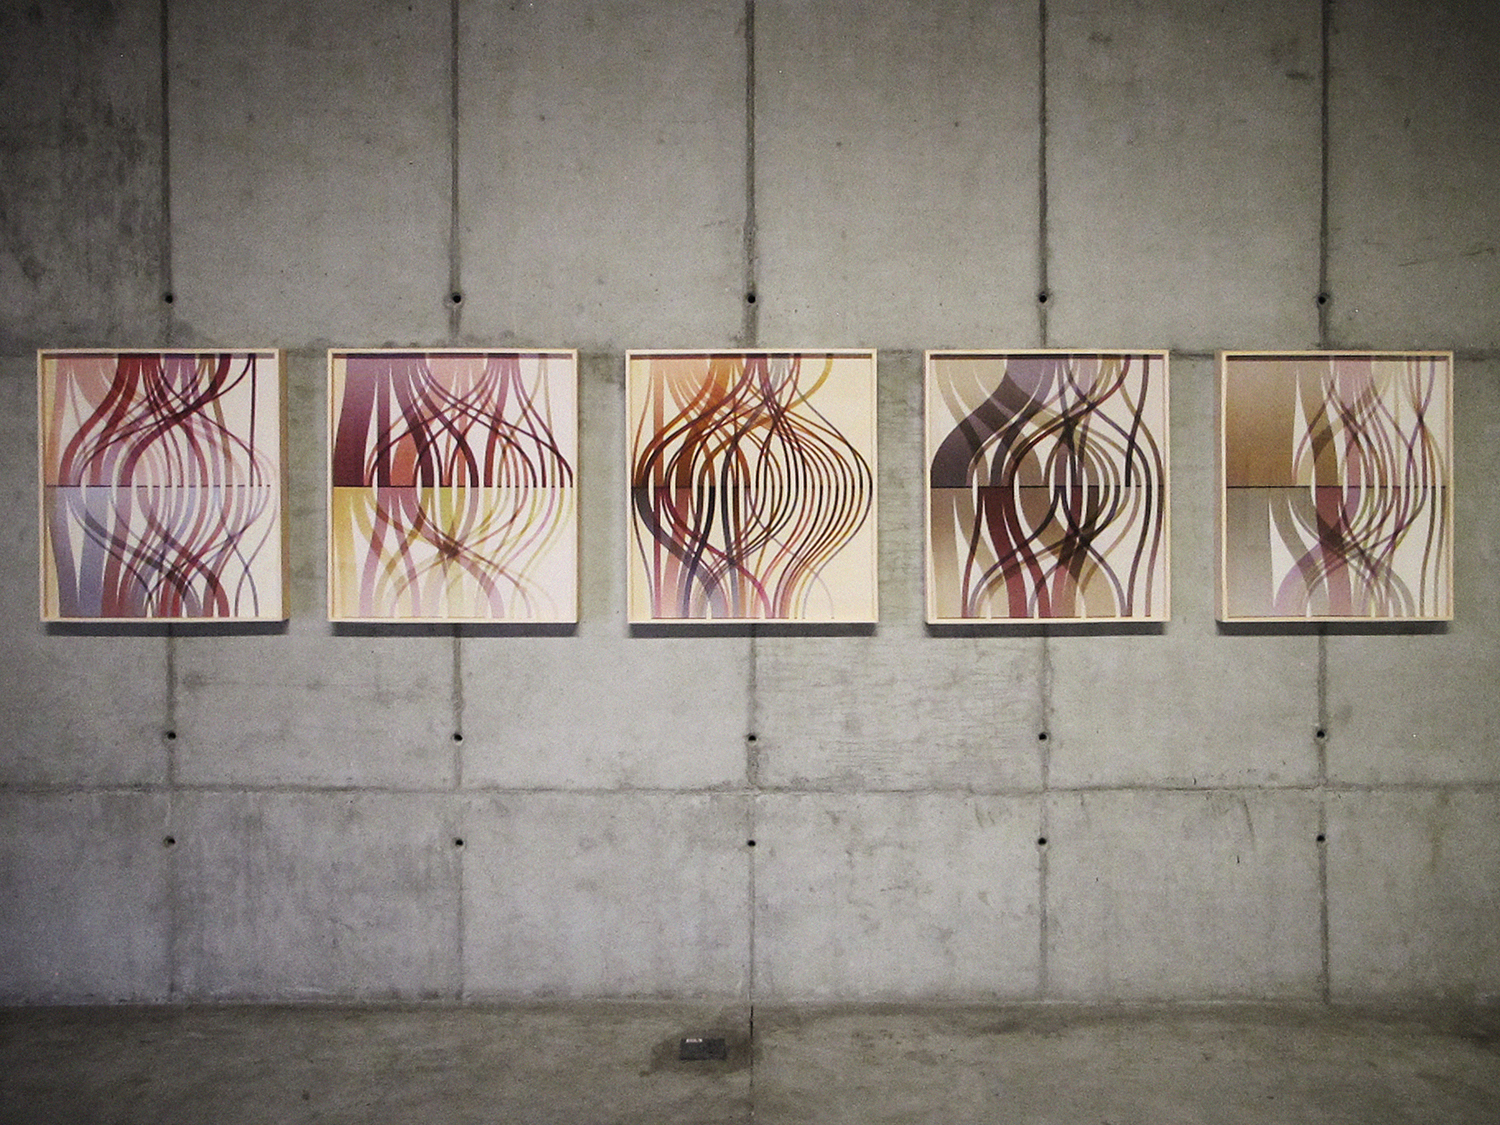 Tracks   (  Statistical  Self-portraits series  ) •2012 •Inkjet print on cotton paper + artist book •27.6 x 25.6 in (each)